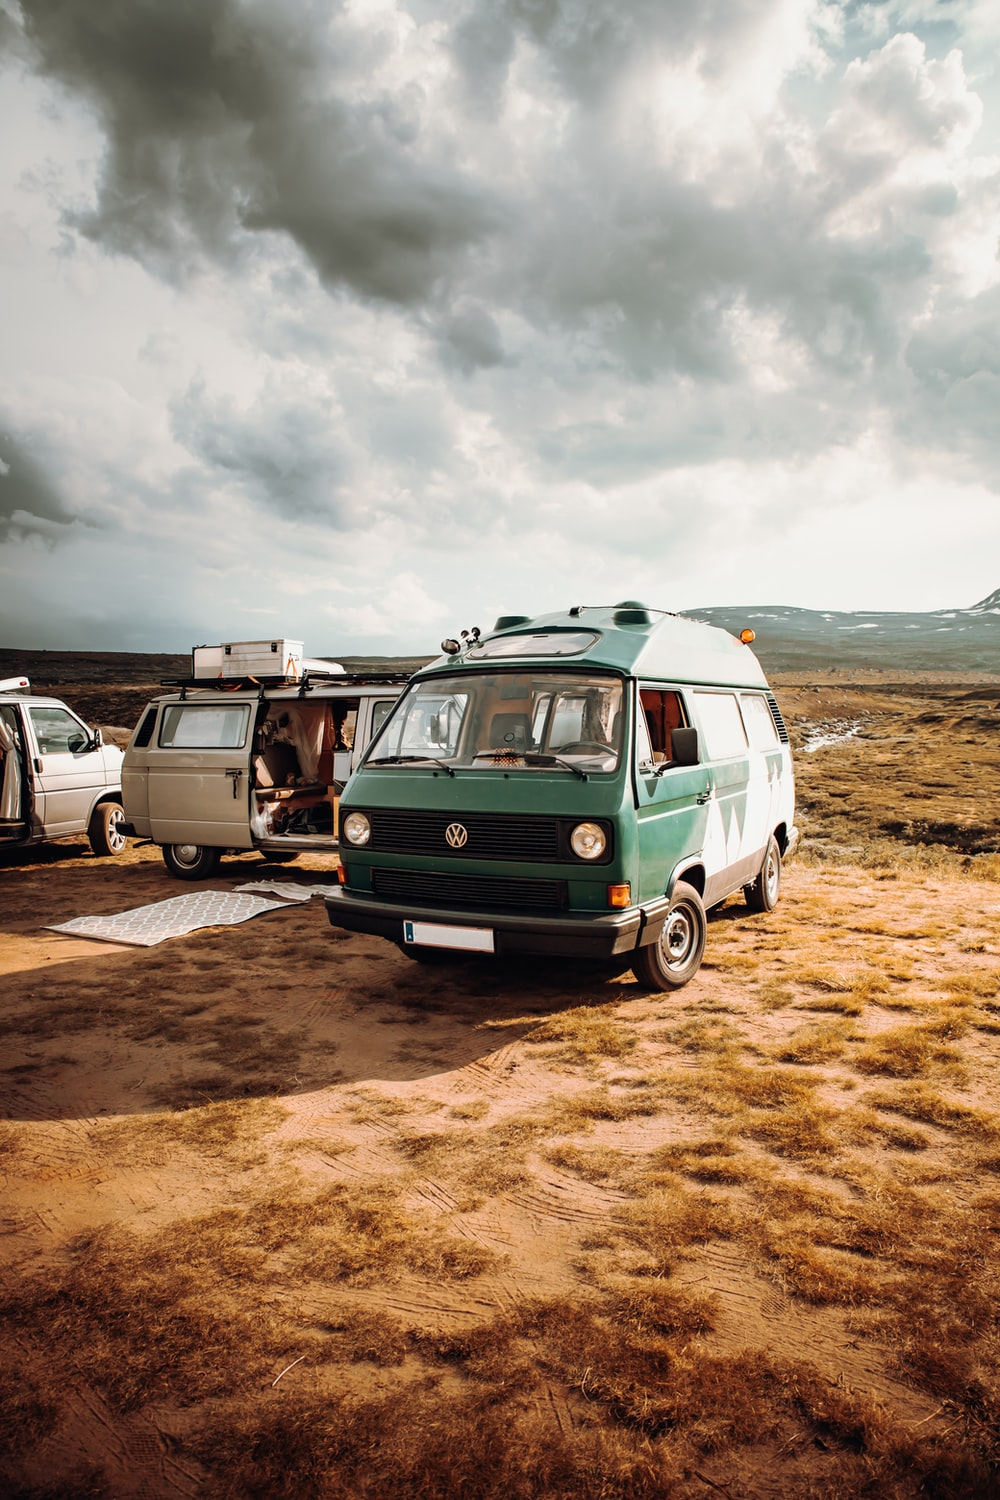 green and white van on brown sand under cloudy sky during daytime